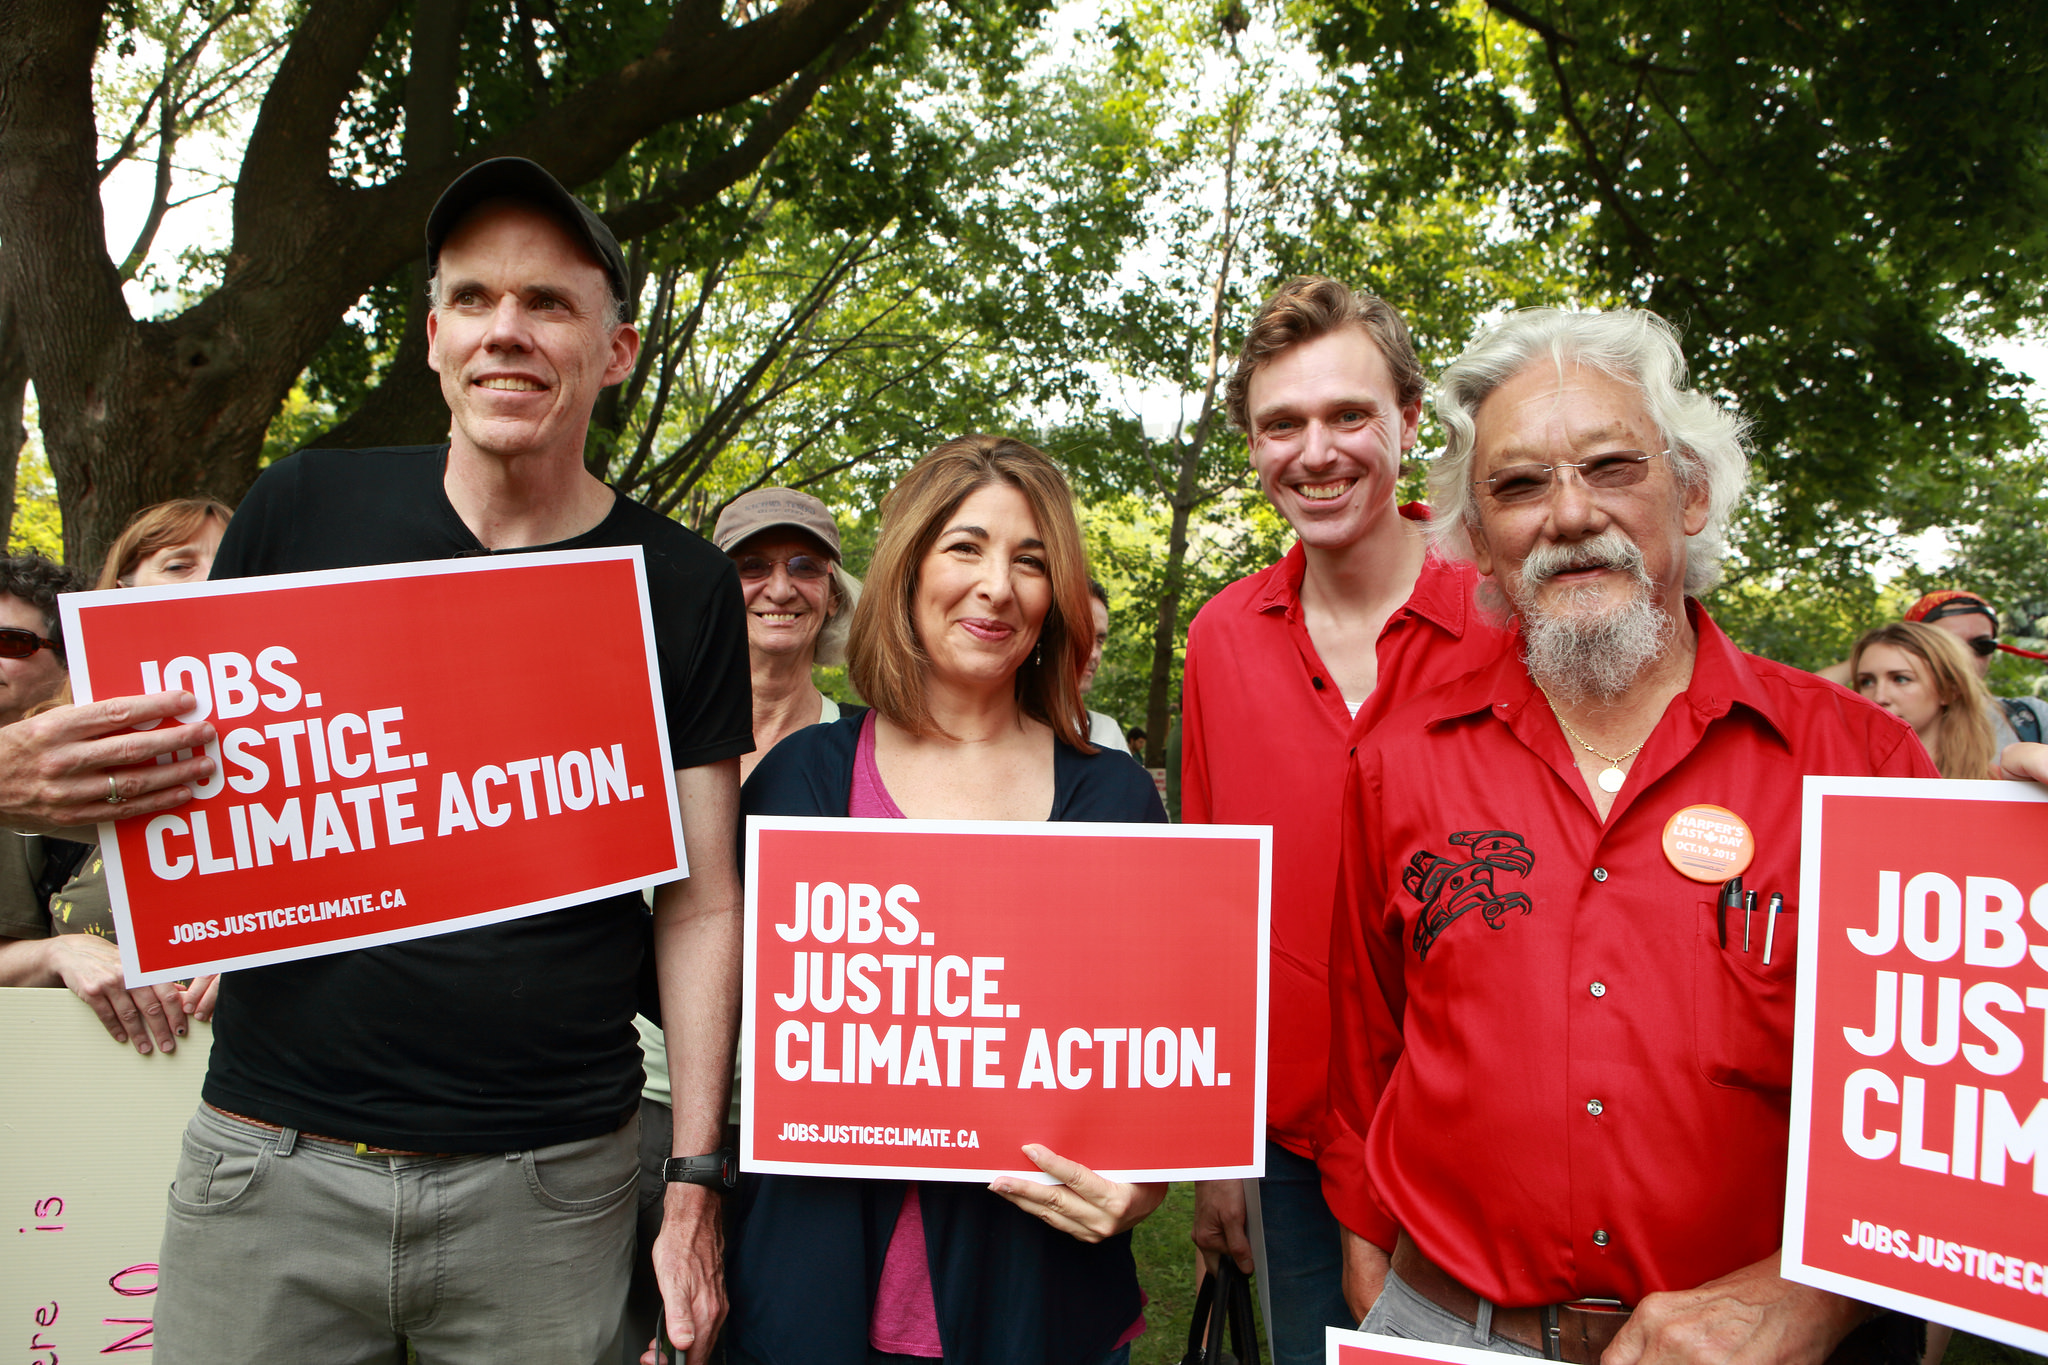 Bill McKibben, Naomi Klein, Joel Plaskett and David Suzuki hold signs for the march